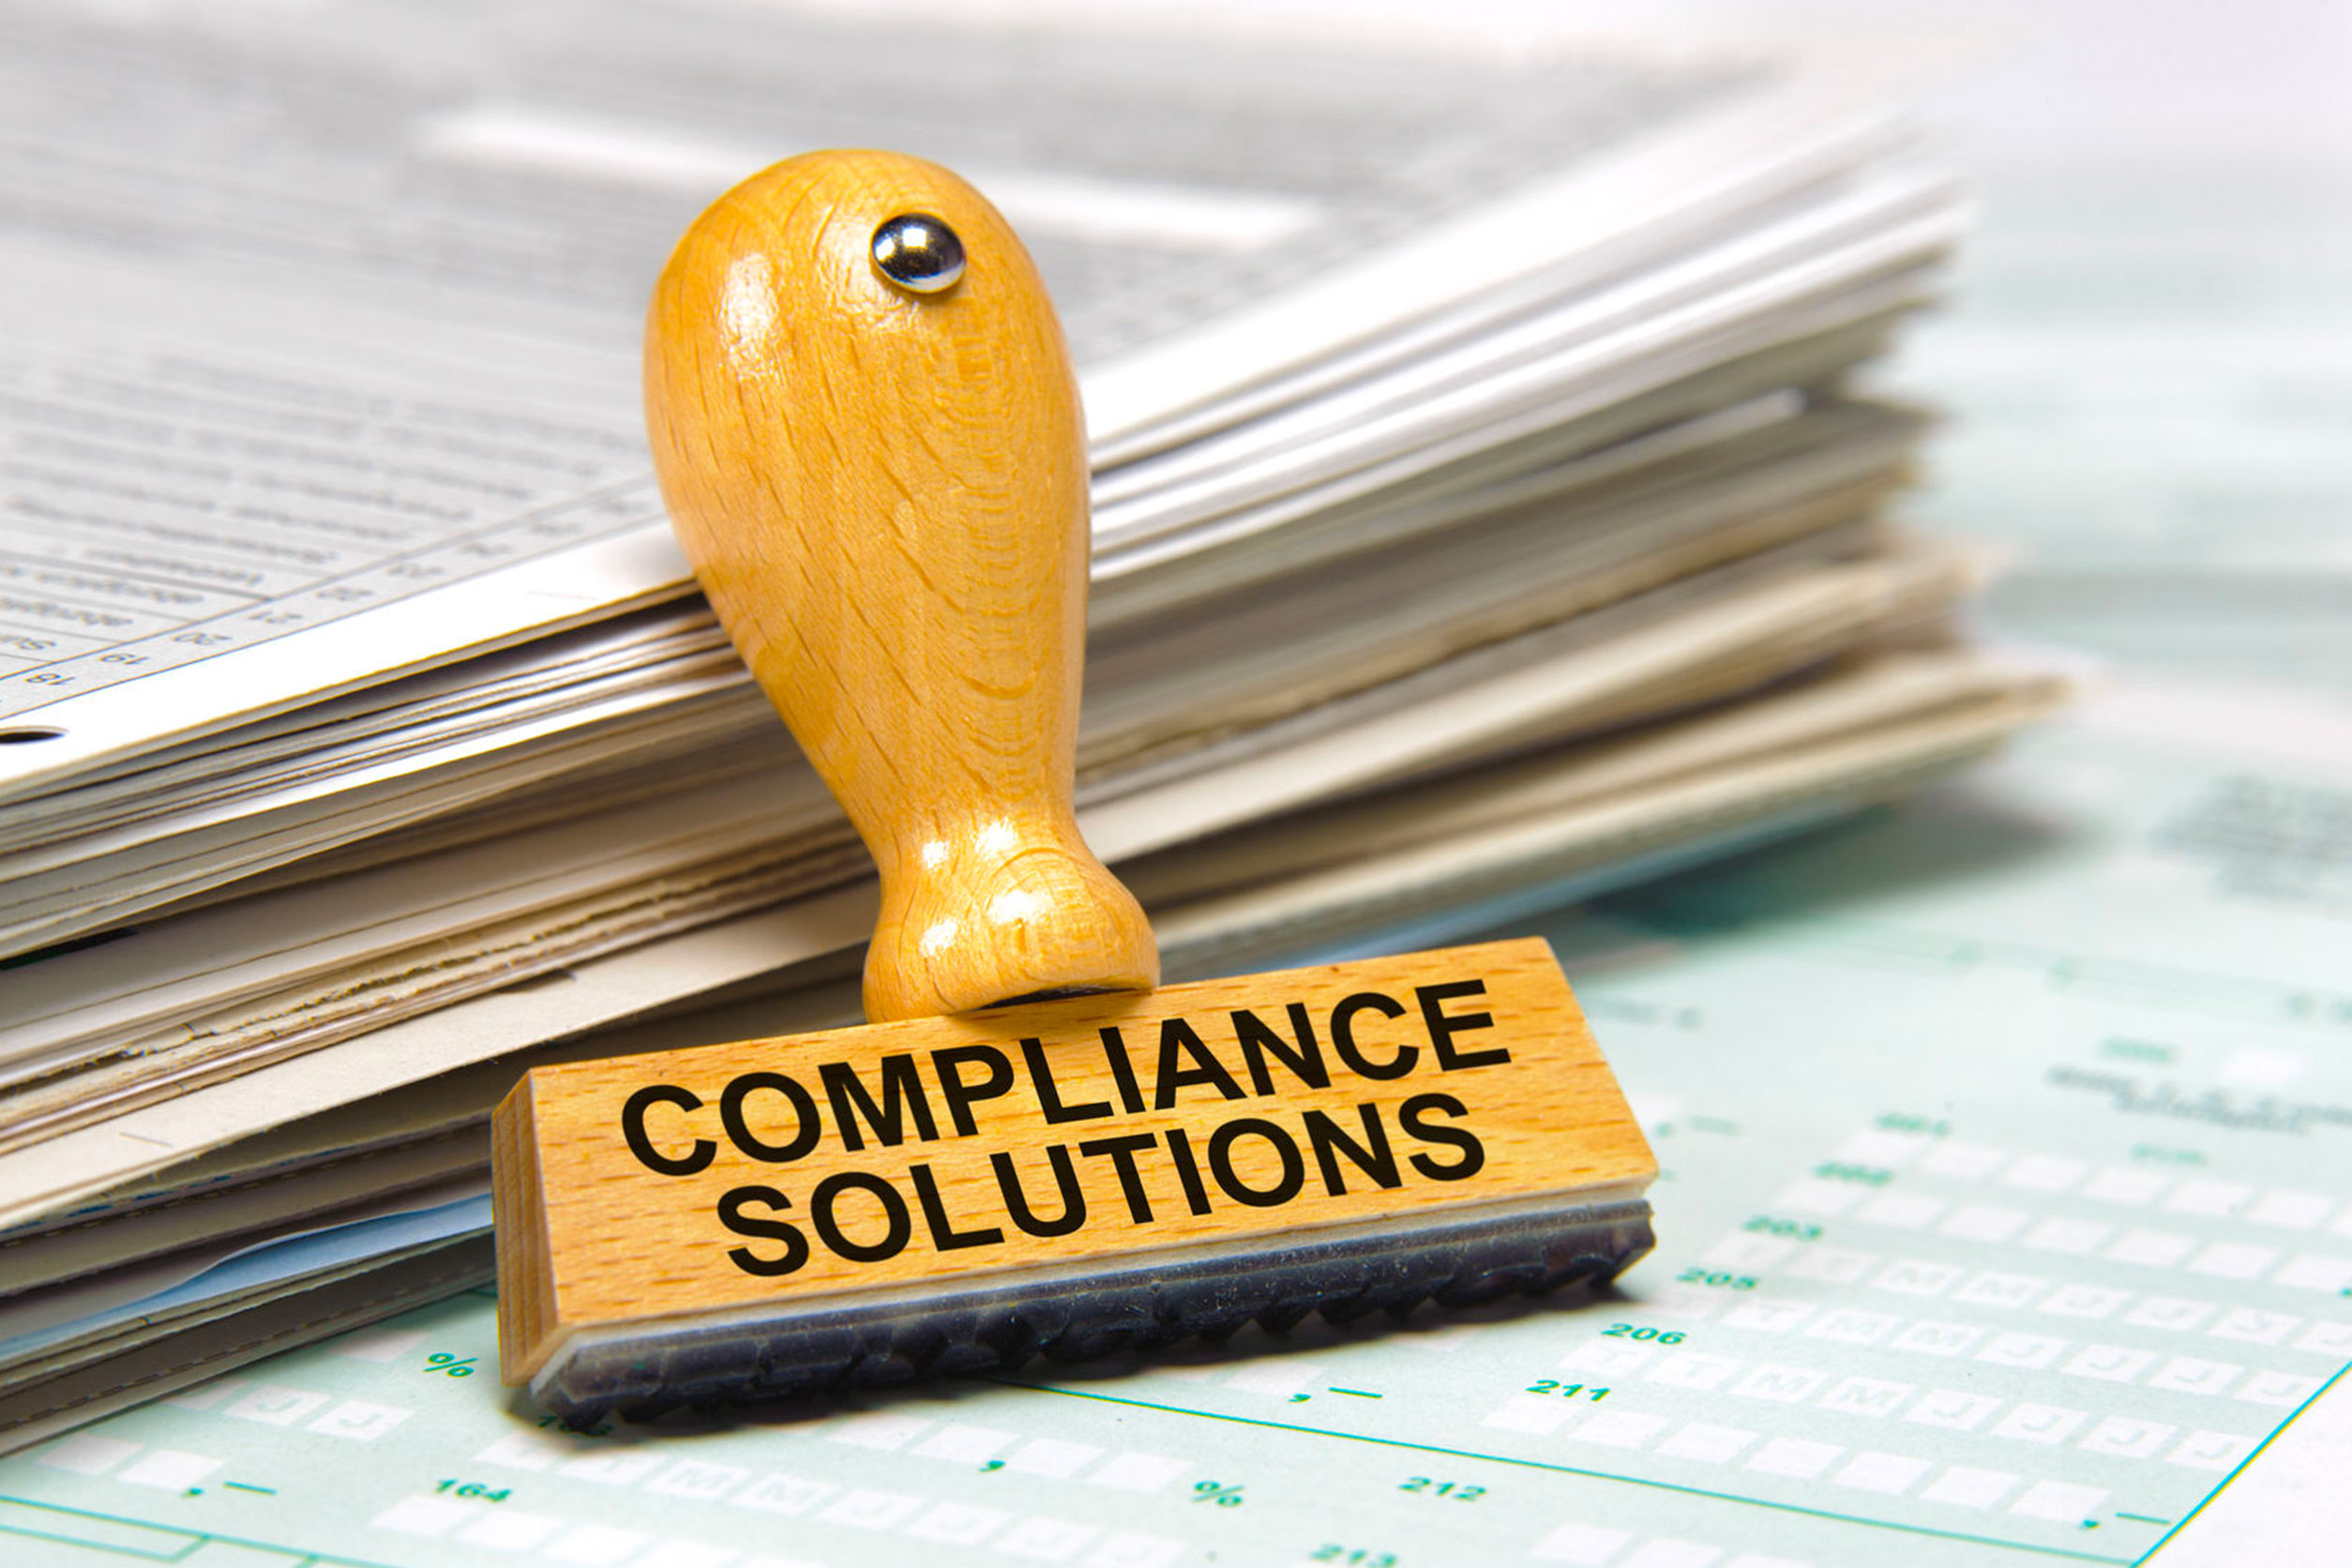 Compliance Solutions Image